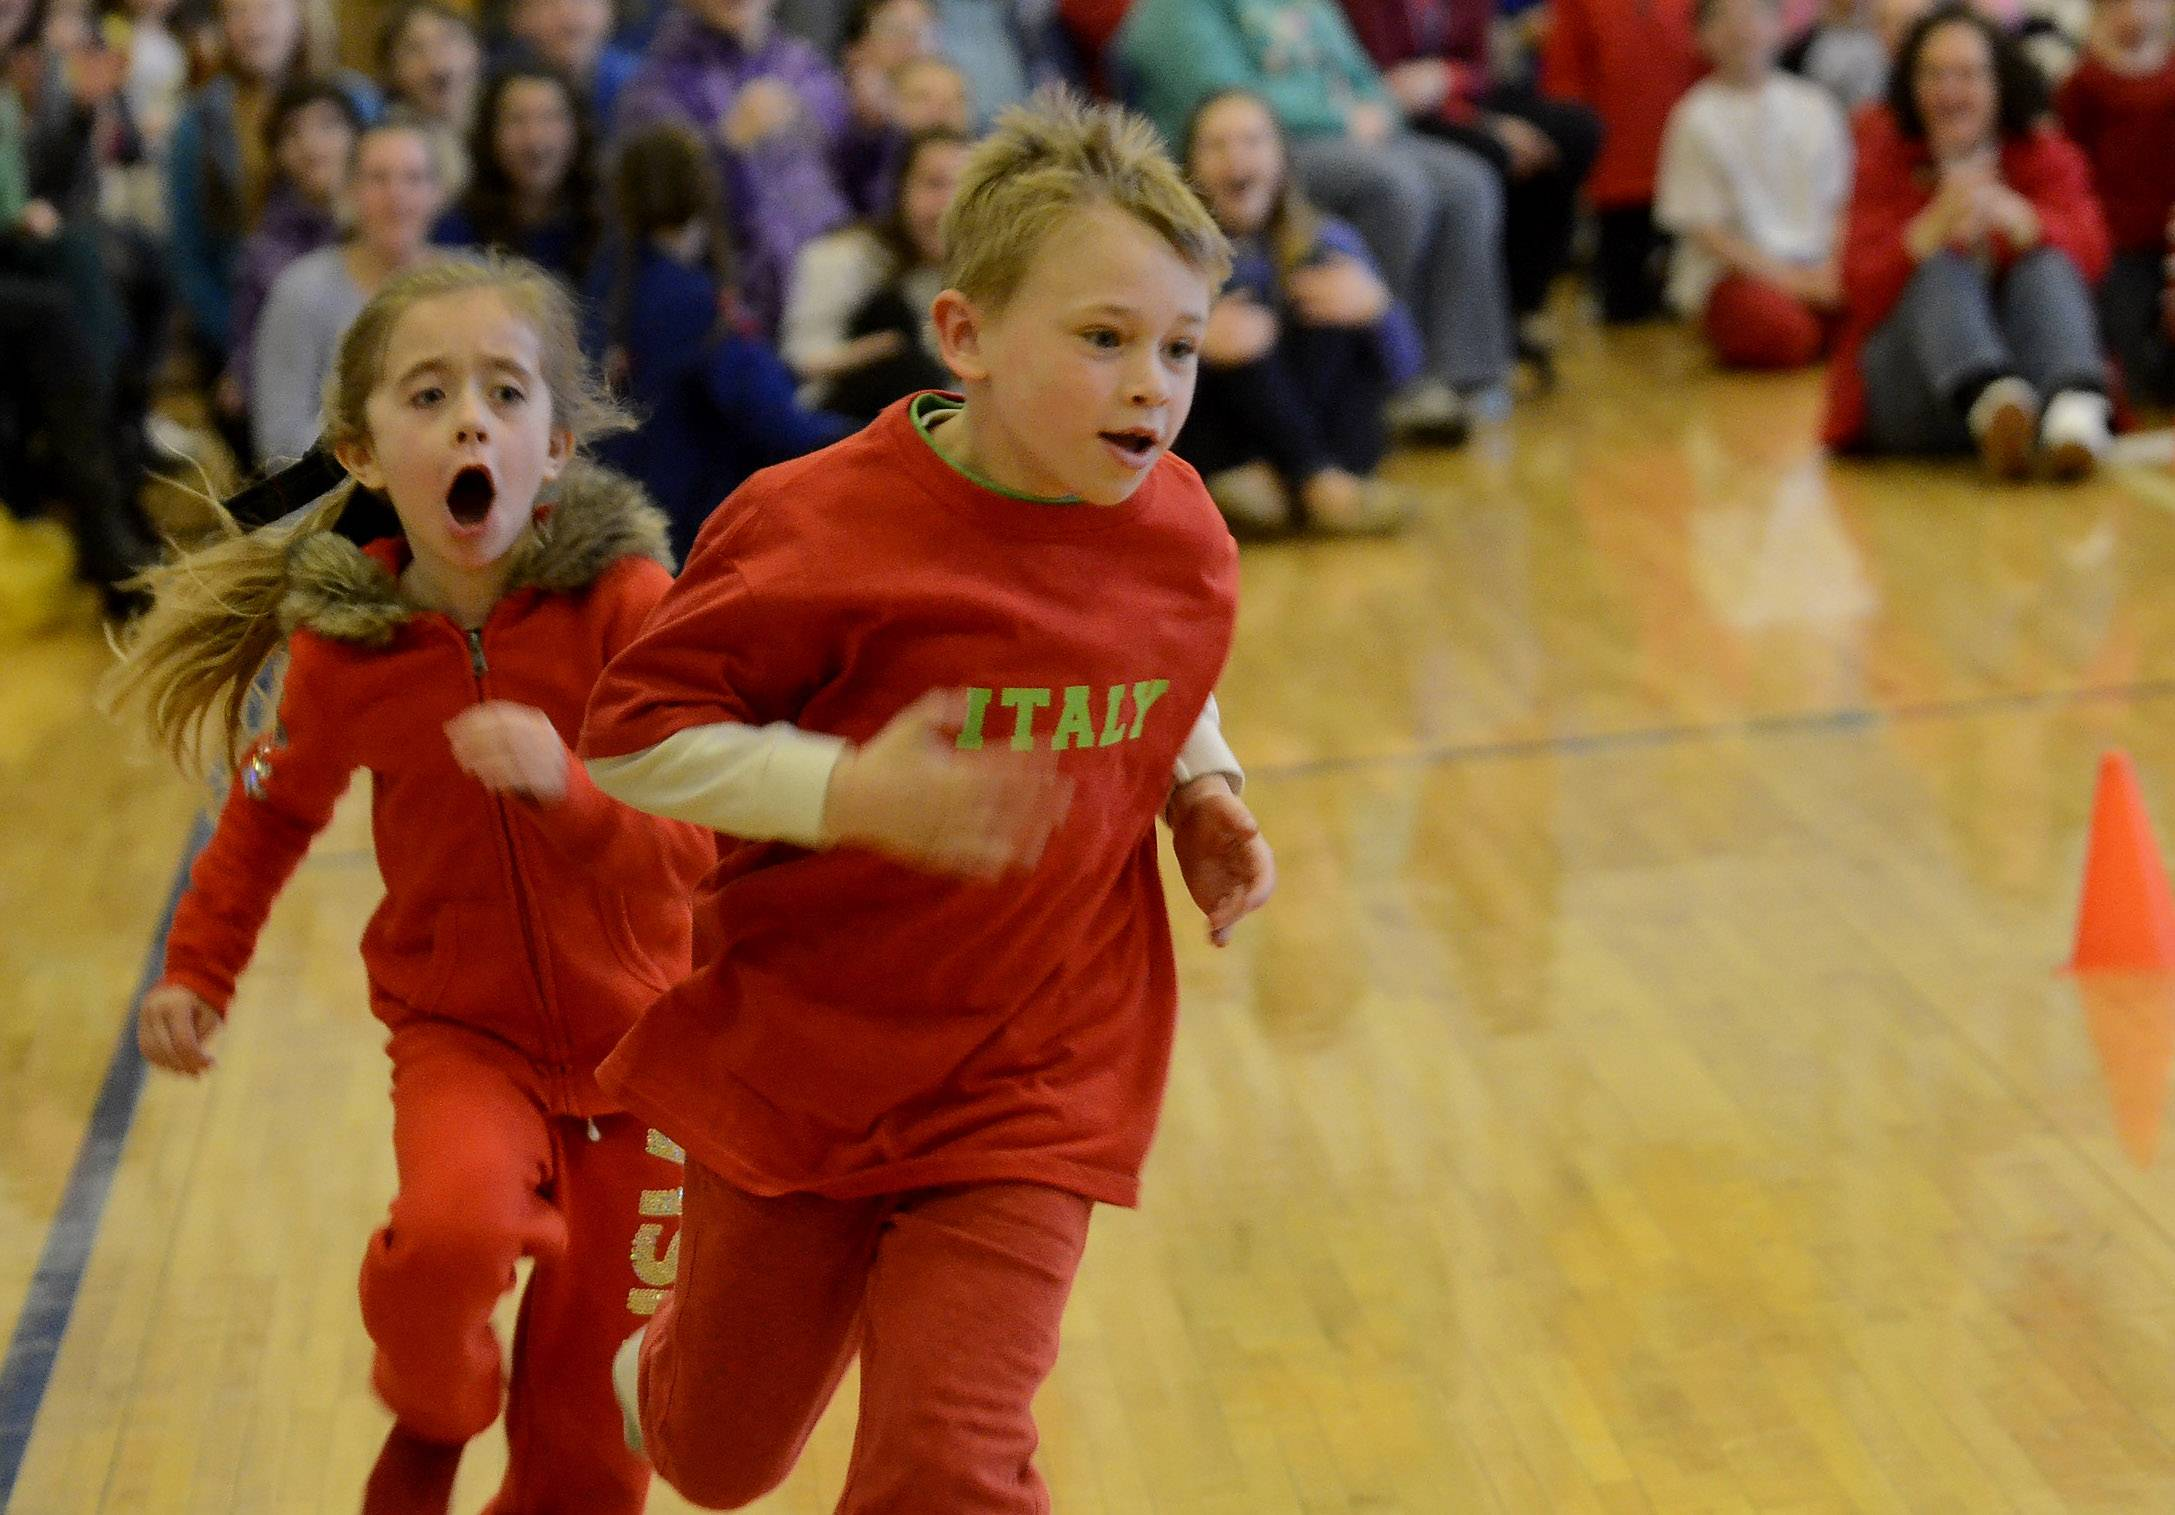 First-graders Briana Butler and Gavin Stanley race around the speed skating track during an Olympic Event Friday at St. Francis de Sales Parish School in Lake Zurich.